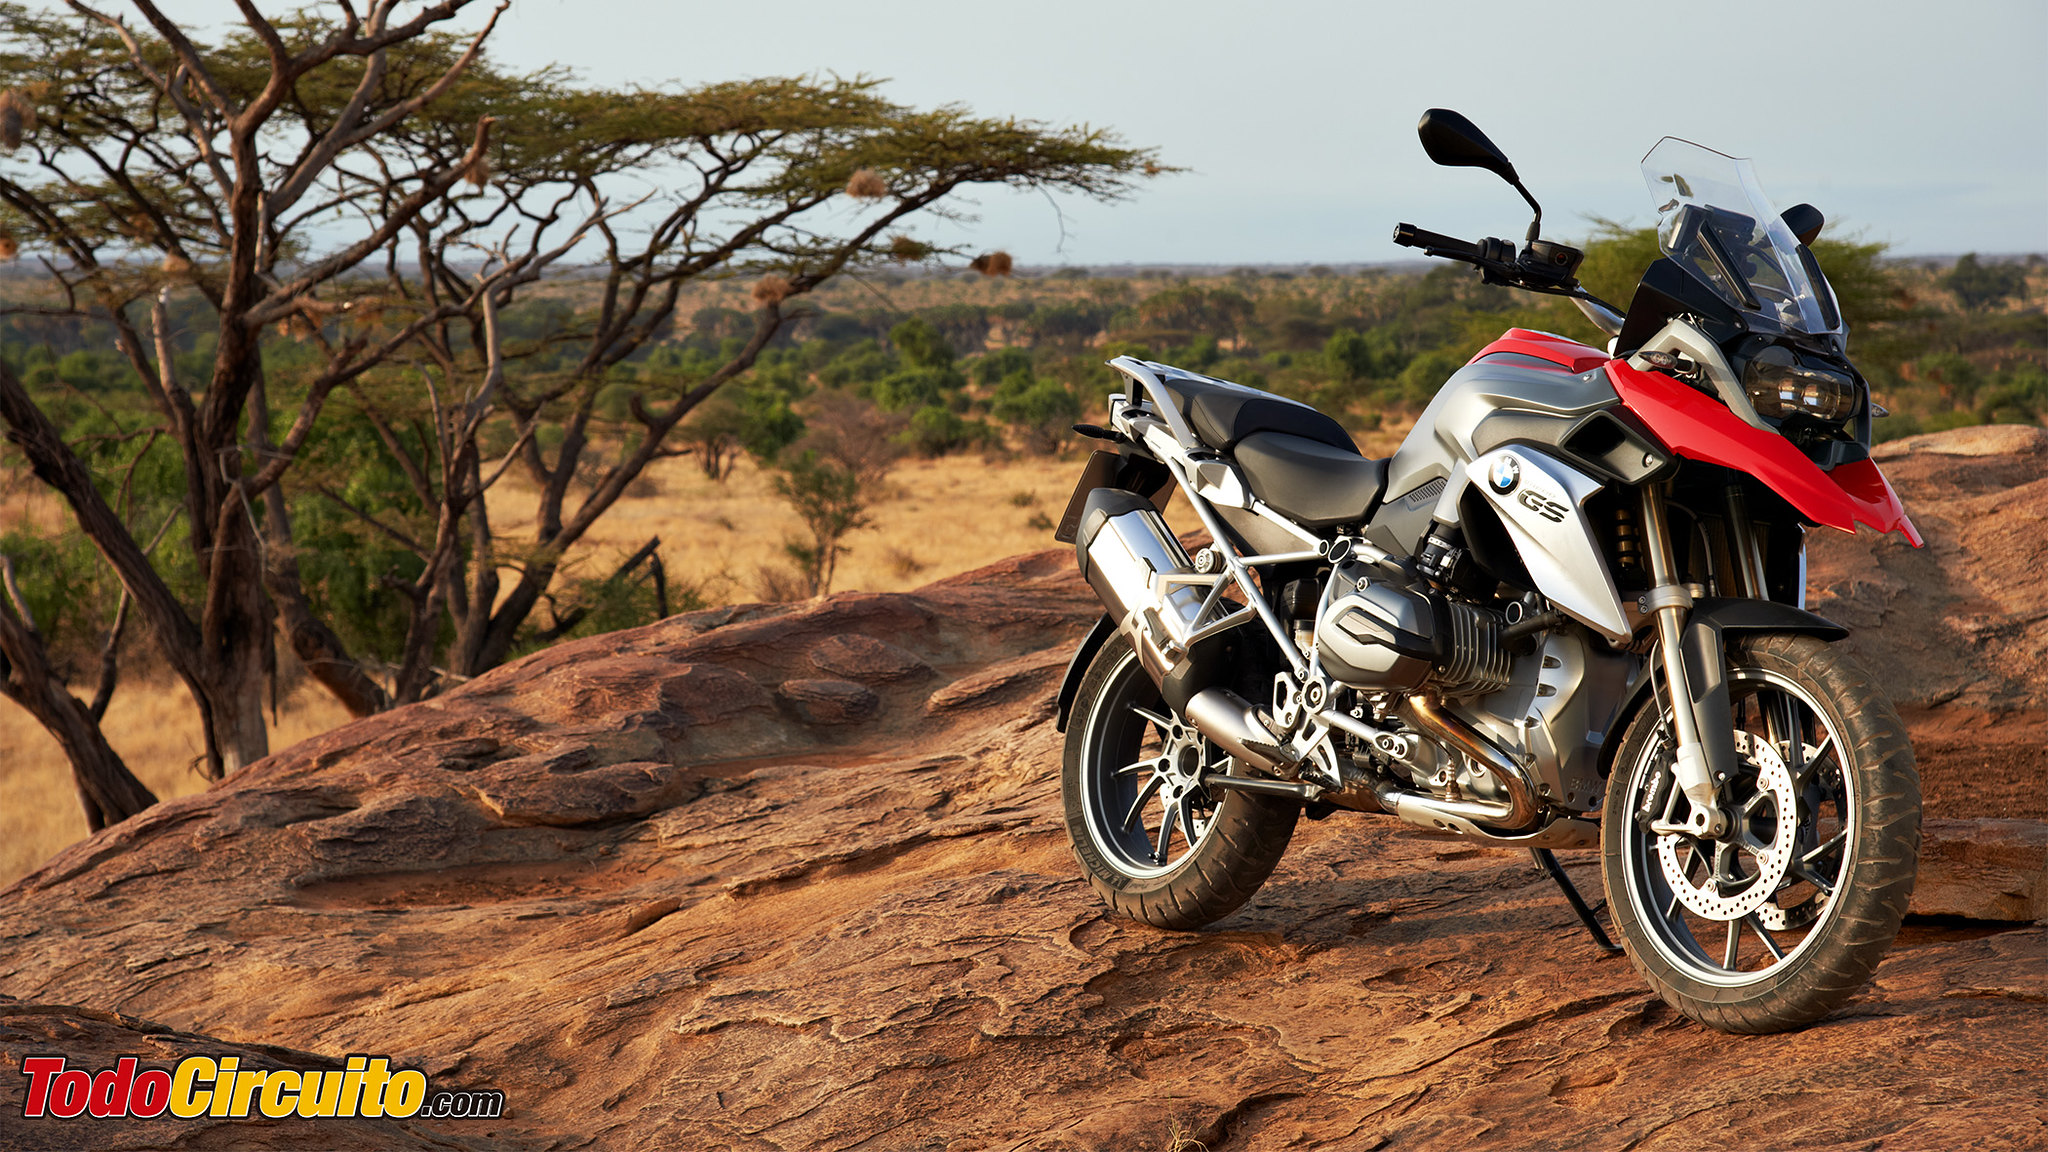 Wallpapers HD BMW R 1200 GS 2013